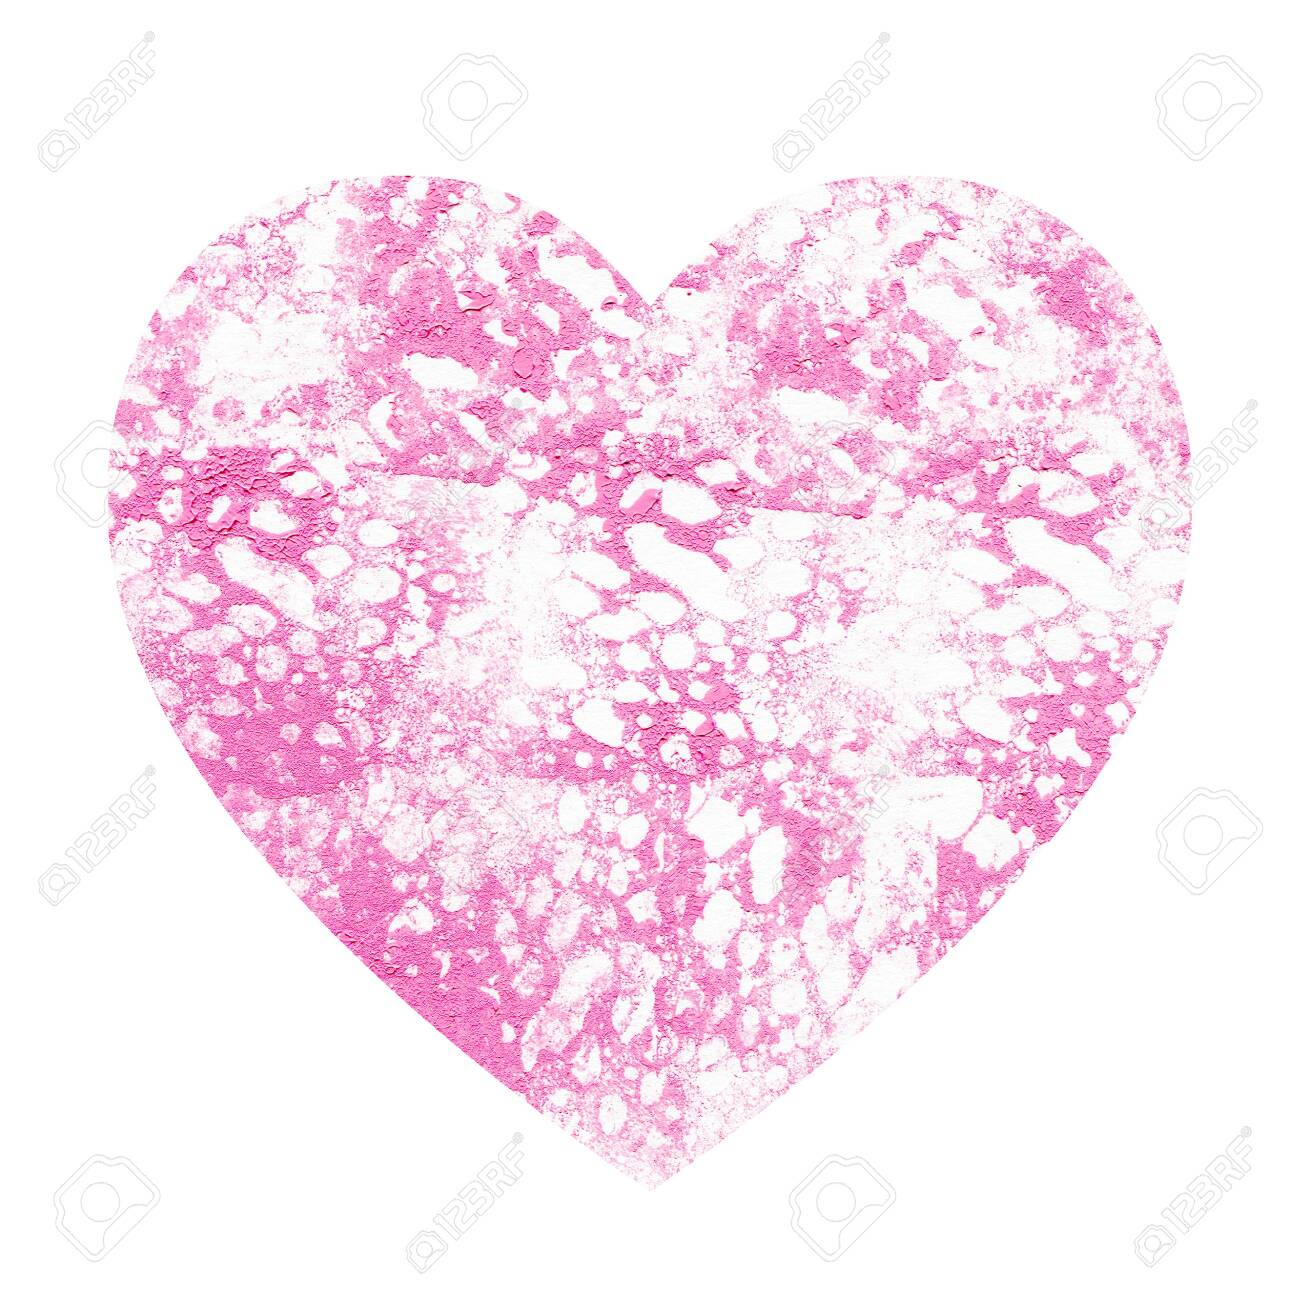 Heart With Abstract Pink Background White And Pink Spots And Stock Photo Picture And Royalty Free Image Image 139222290